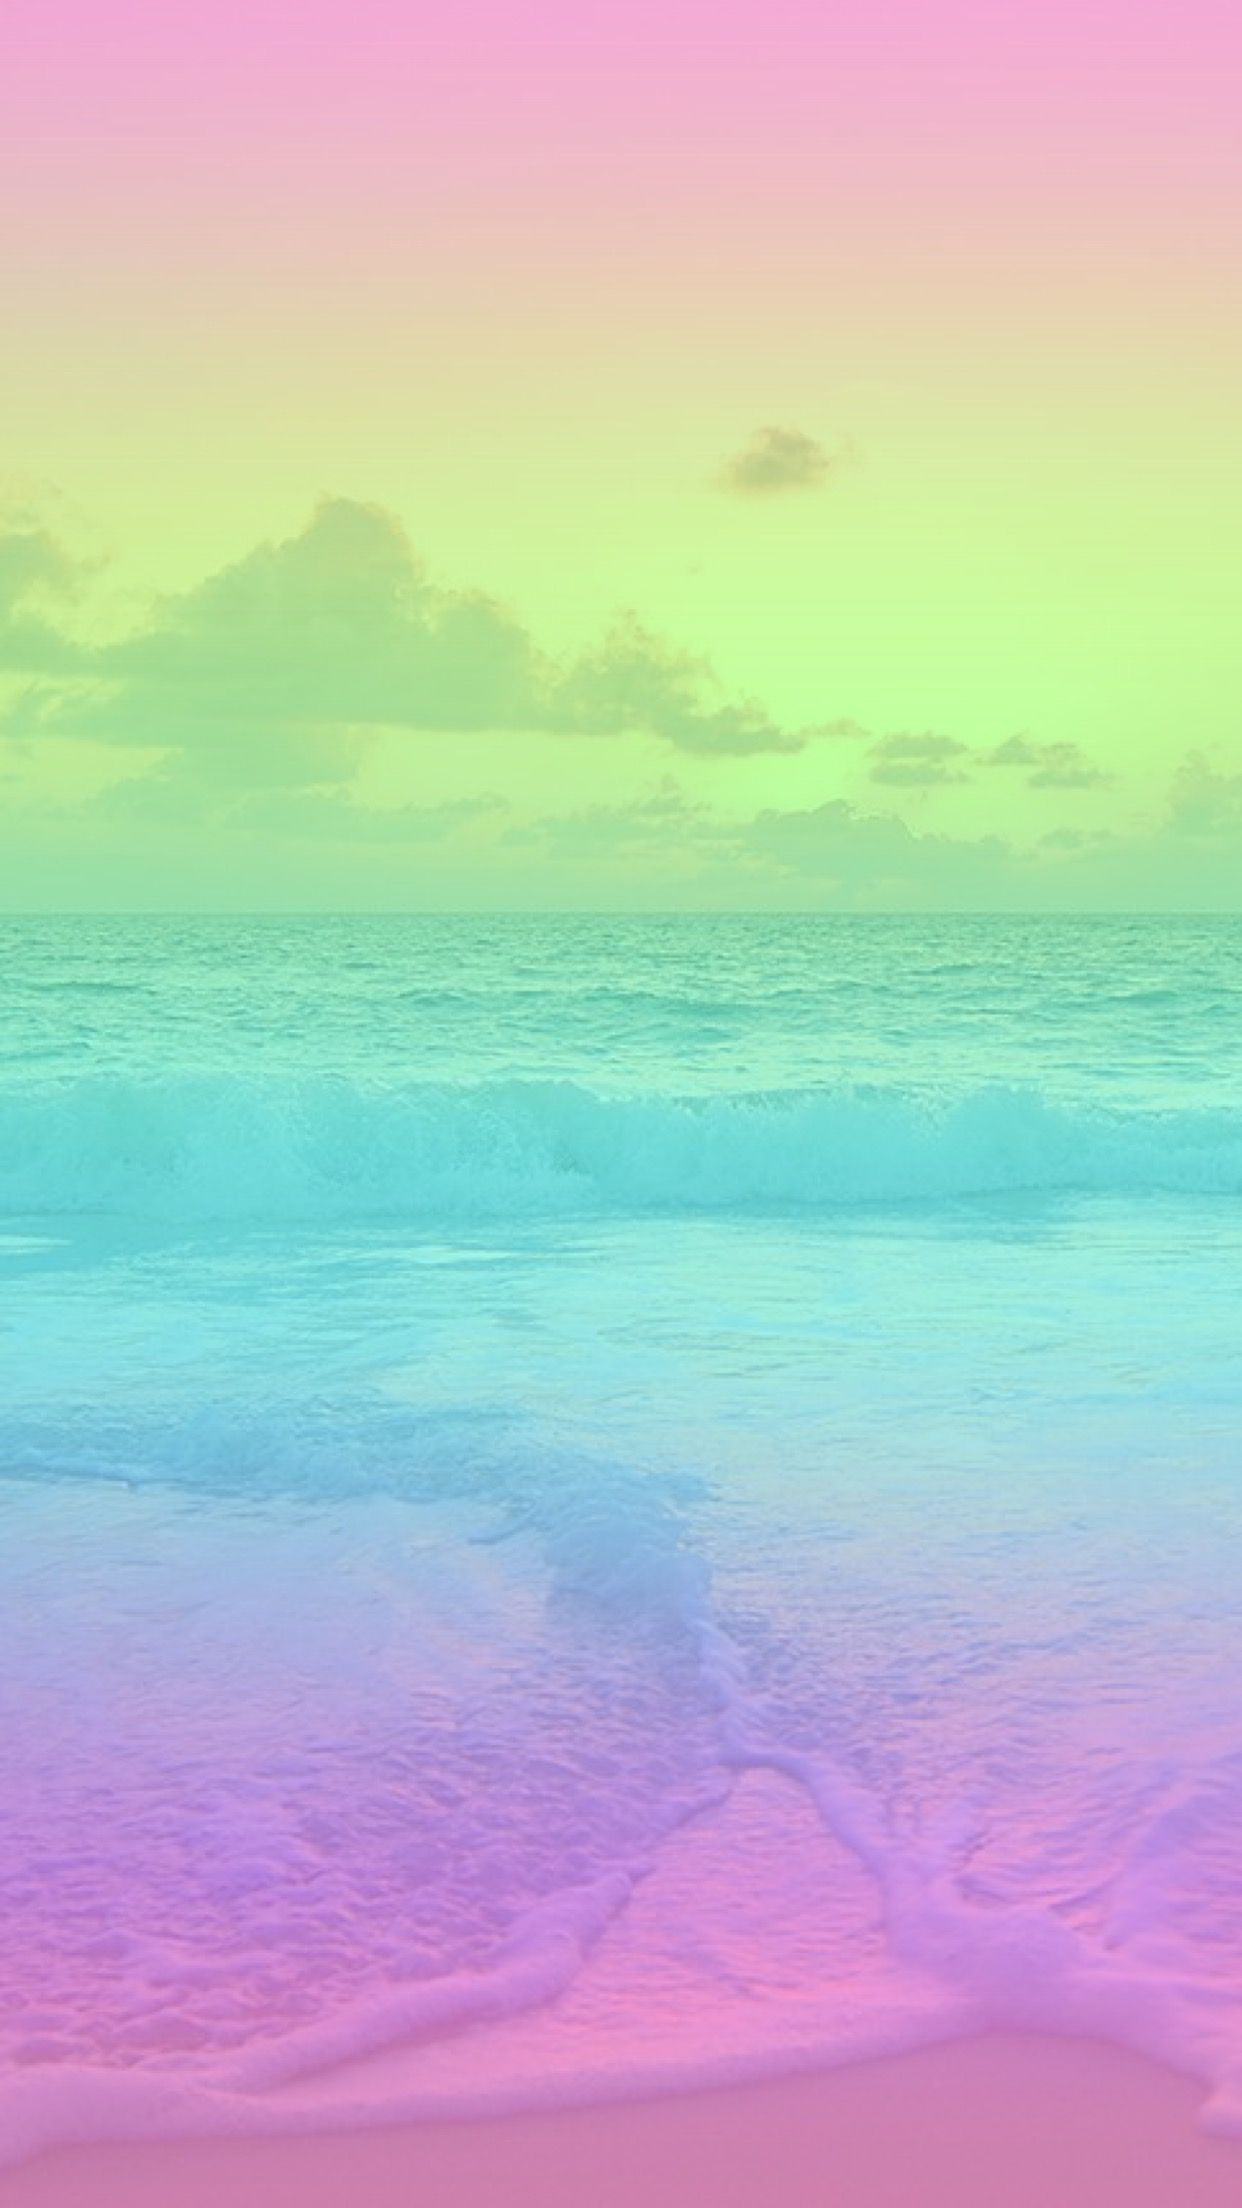 Gradient Series - I did NOT make the original image underneath the gradient, just the gradient colours. Wallpaper, iPhone, Android, Background, Pink, Purple, Blue, HD, sea, ocean, beach, colorful